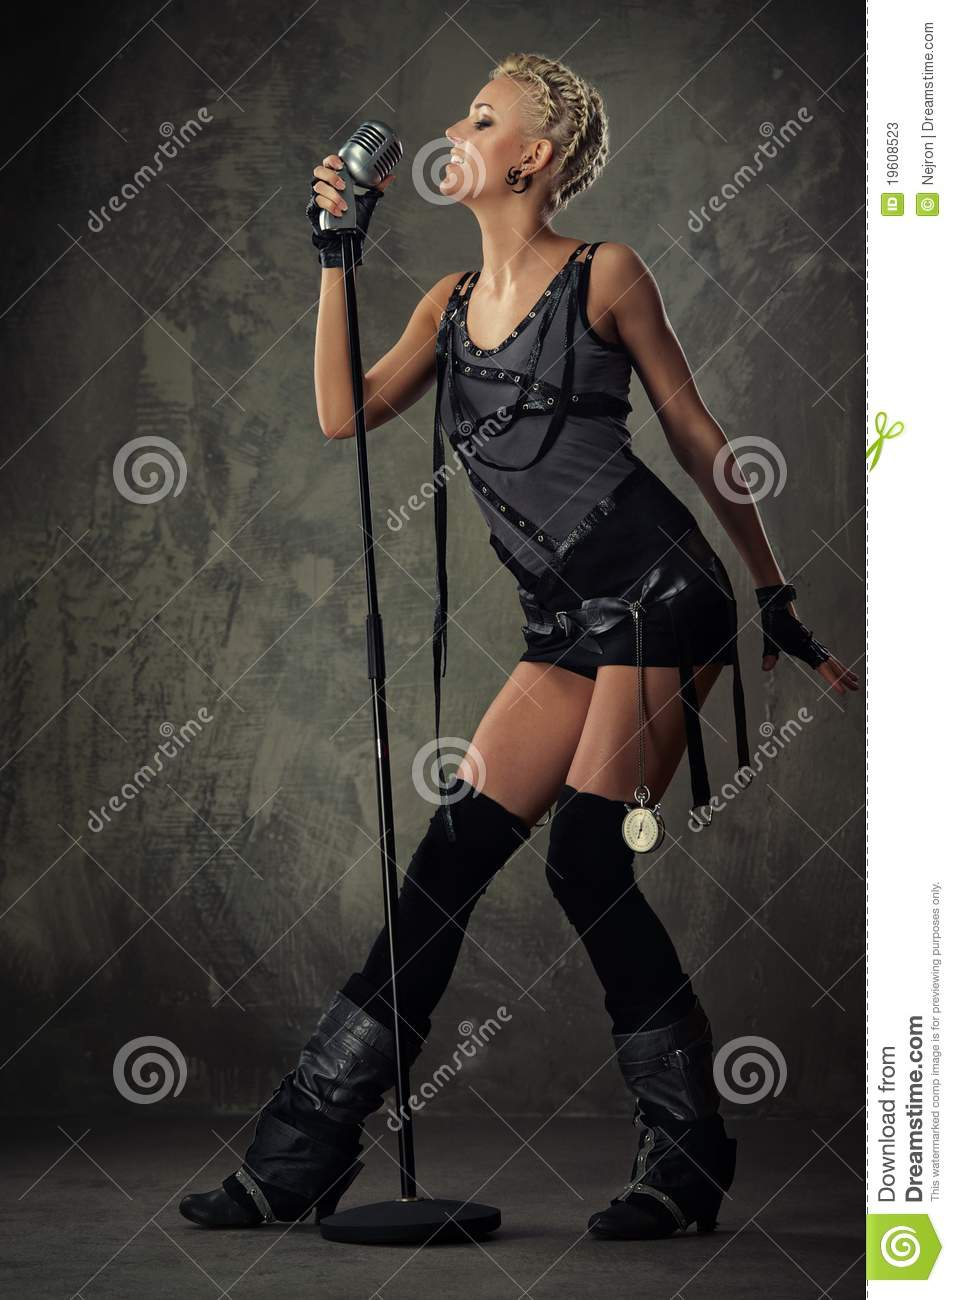 Picture of an attractive steam punk singer.